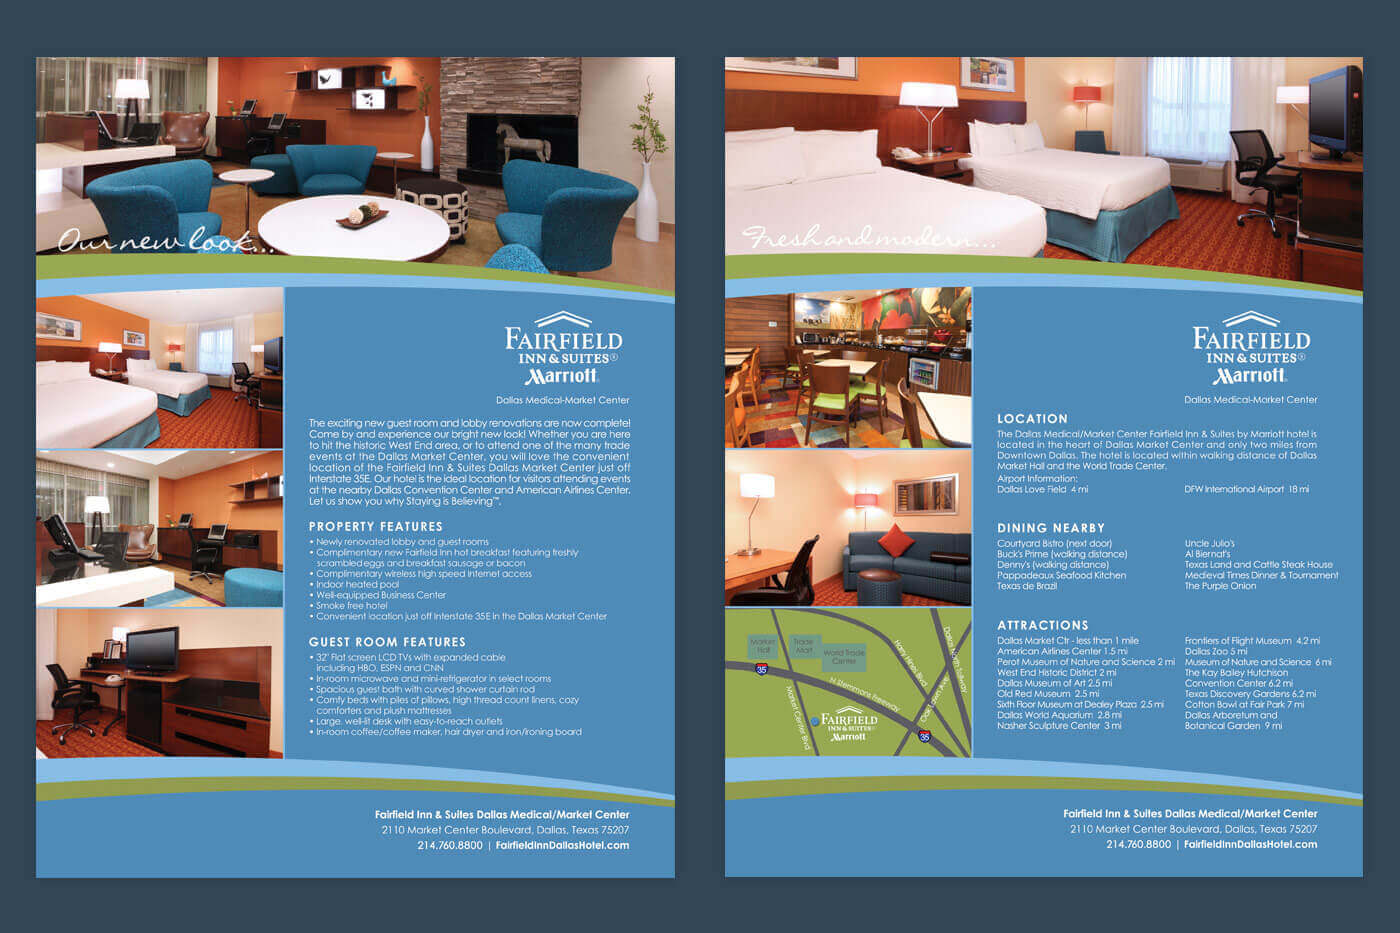 Print Collateral - Fairfield Inn & Suites Dallas Medical/Market Center Factsheet